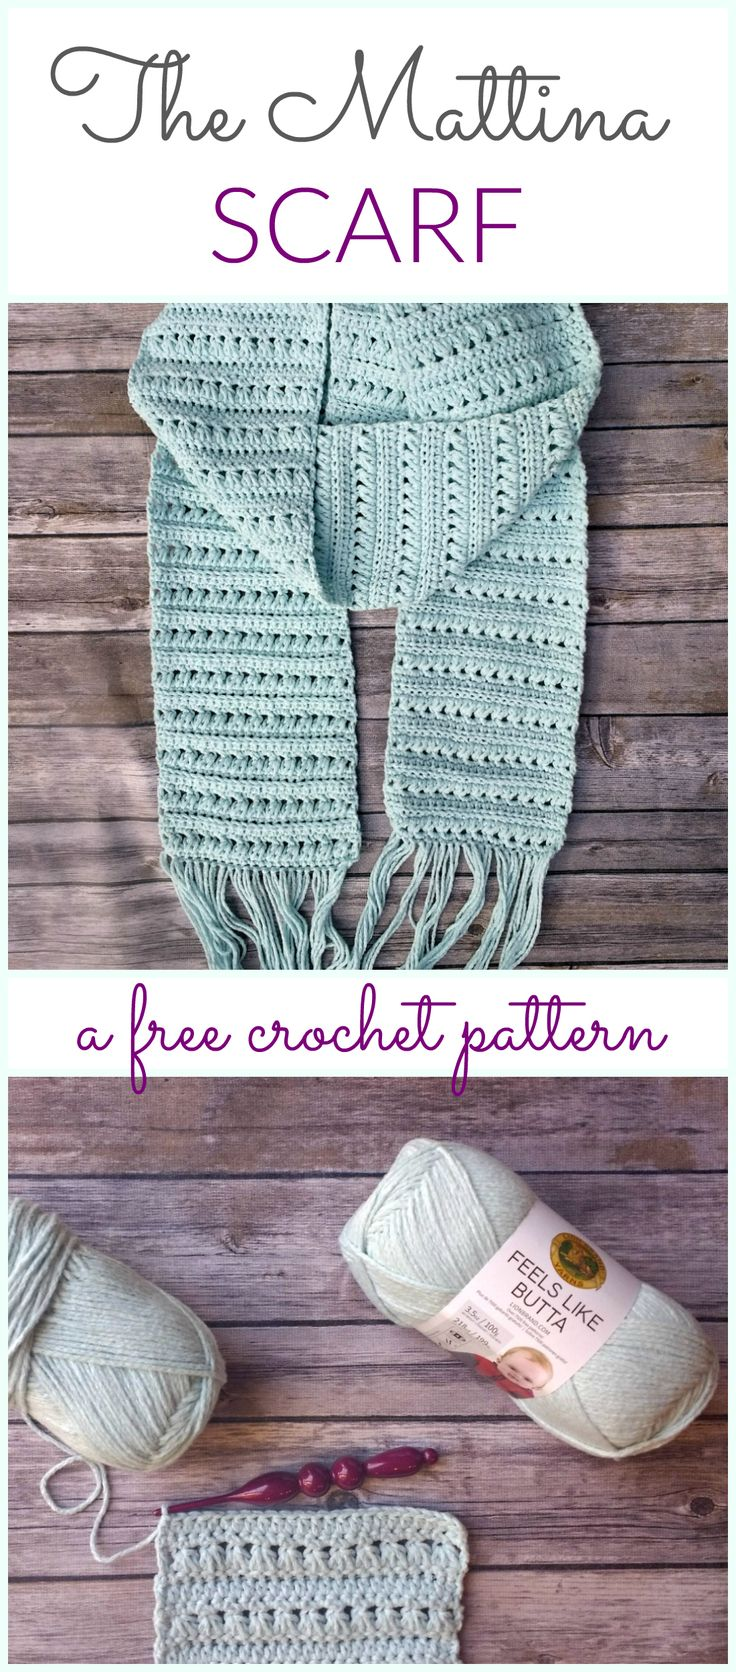 A free crochet pattern for the Mattina Scarf crocheted with Lion Brand's Feels Like Butta - Croyden Crochet